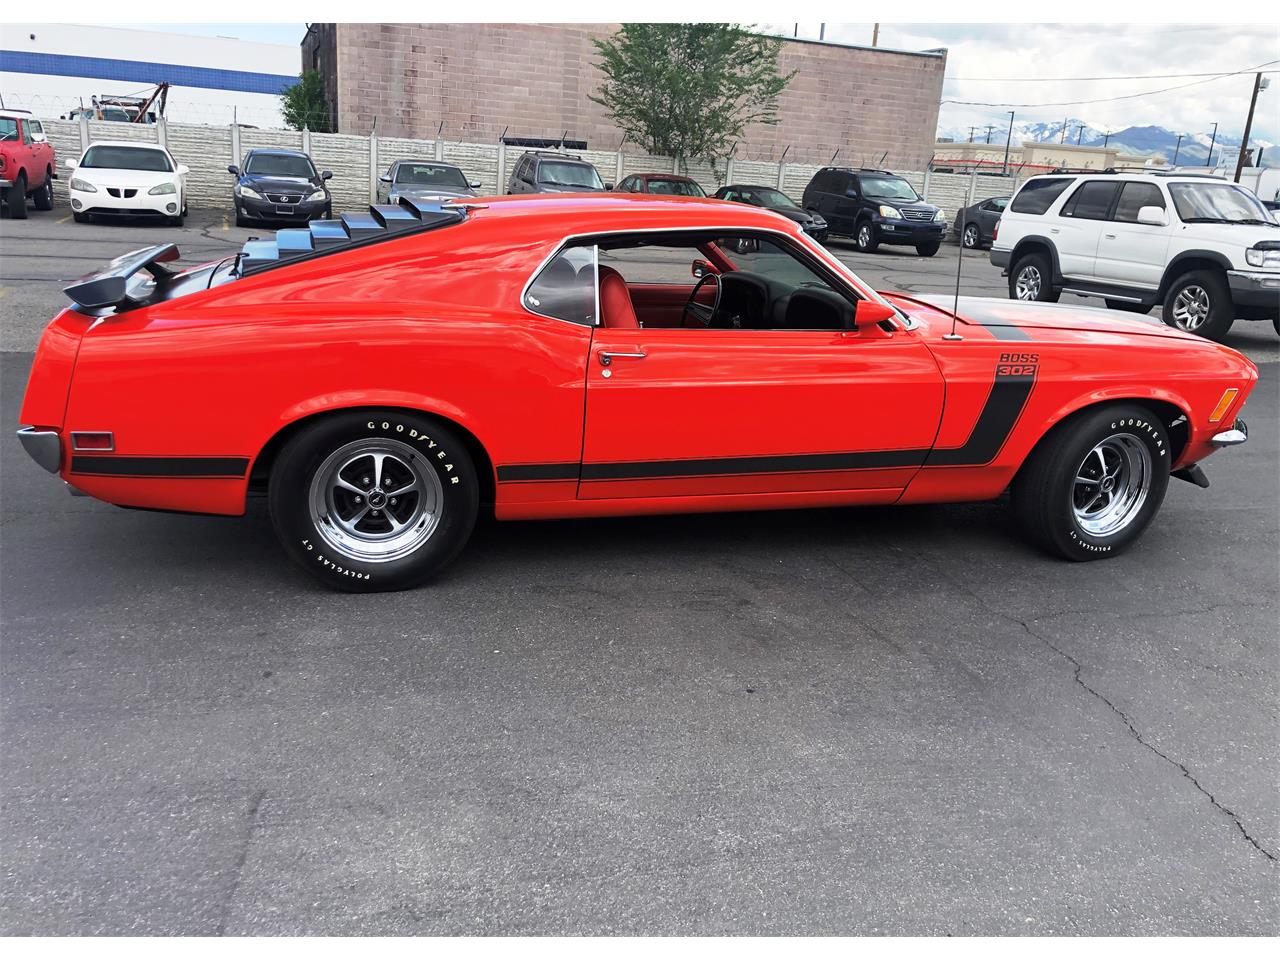 Large Picture of 1970 Mustang located in West Valley City Utah Auction Vehicle - Q4K1